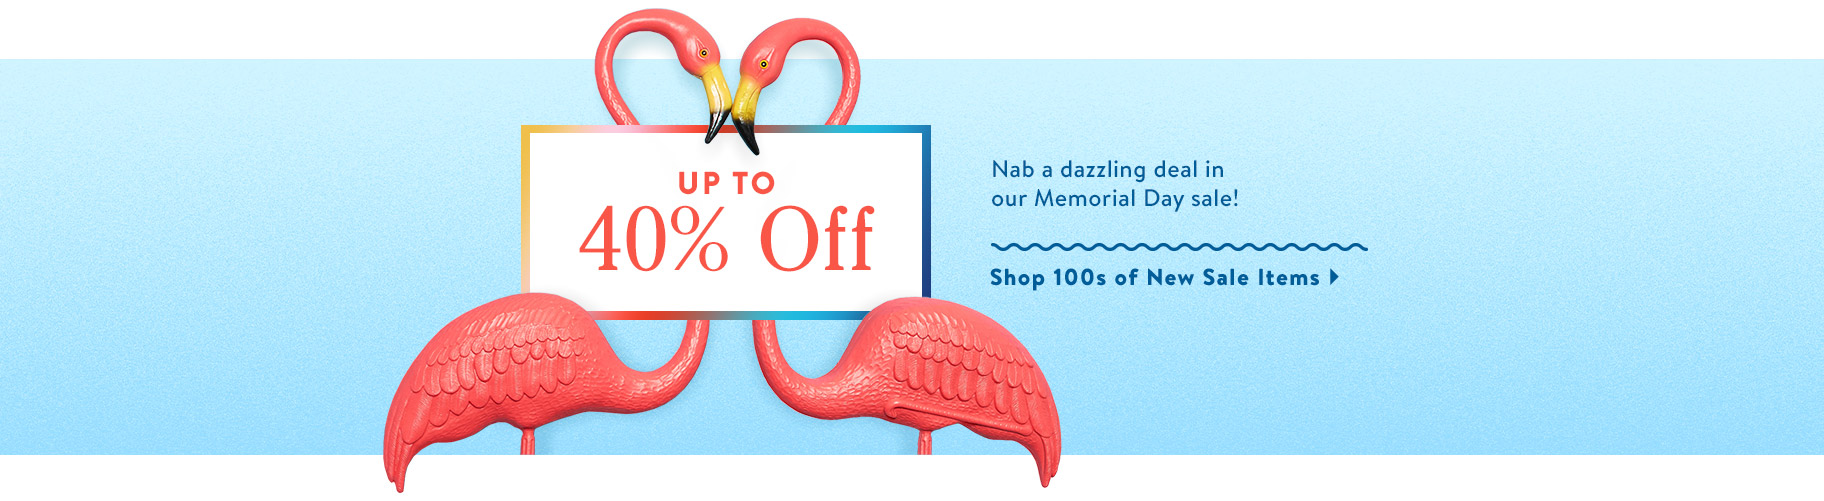 Up to 40% Off. Nab a dazzling deal in our Memorial Day Sale! Shop 100s of New Sale Items.